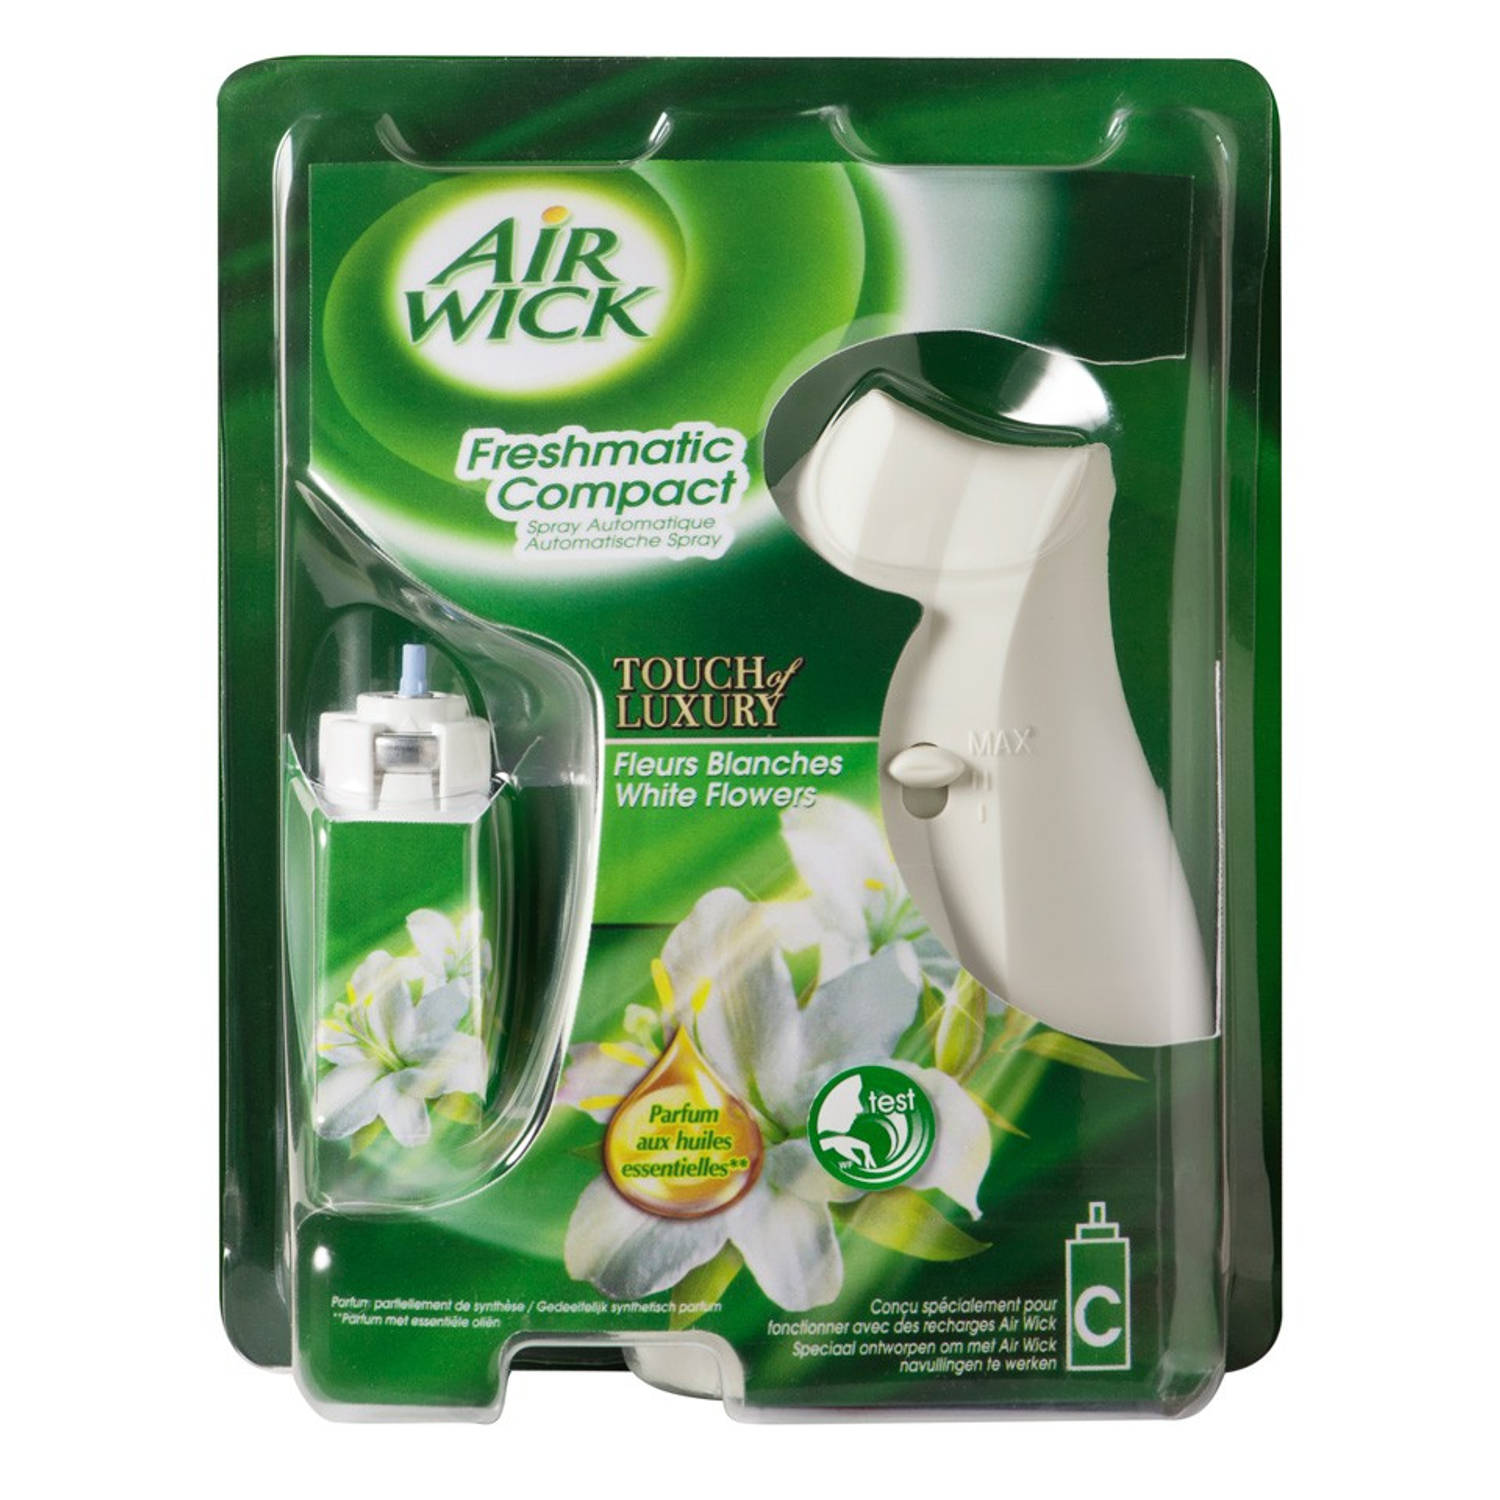 Air Wick Freshmatic Compact White Flowers Blokker